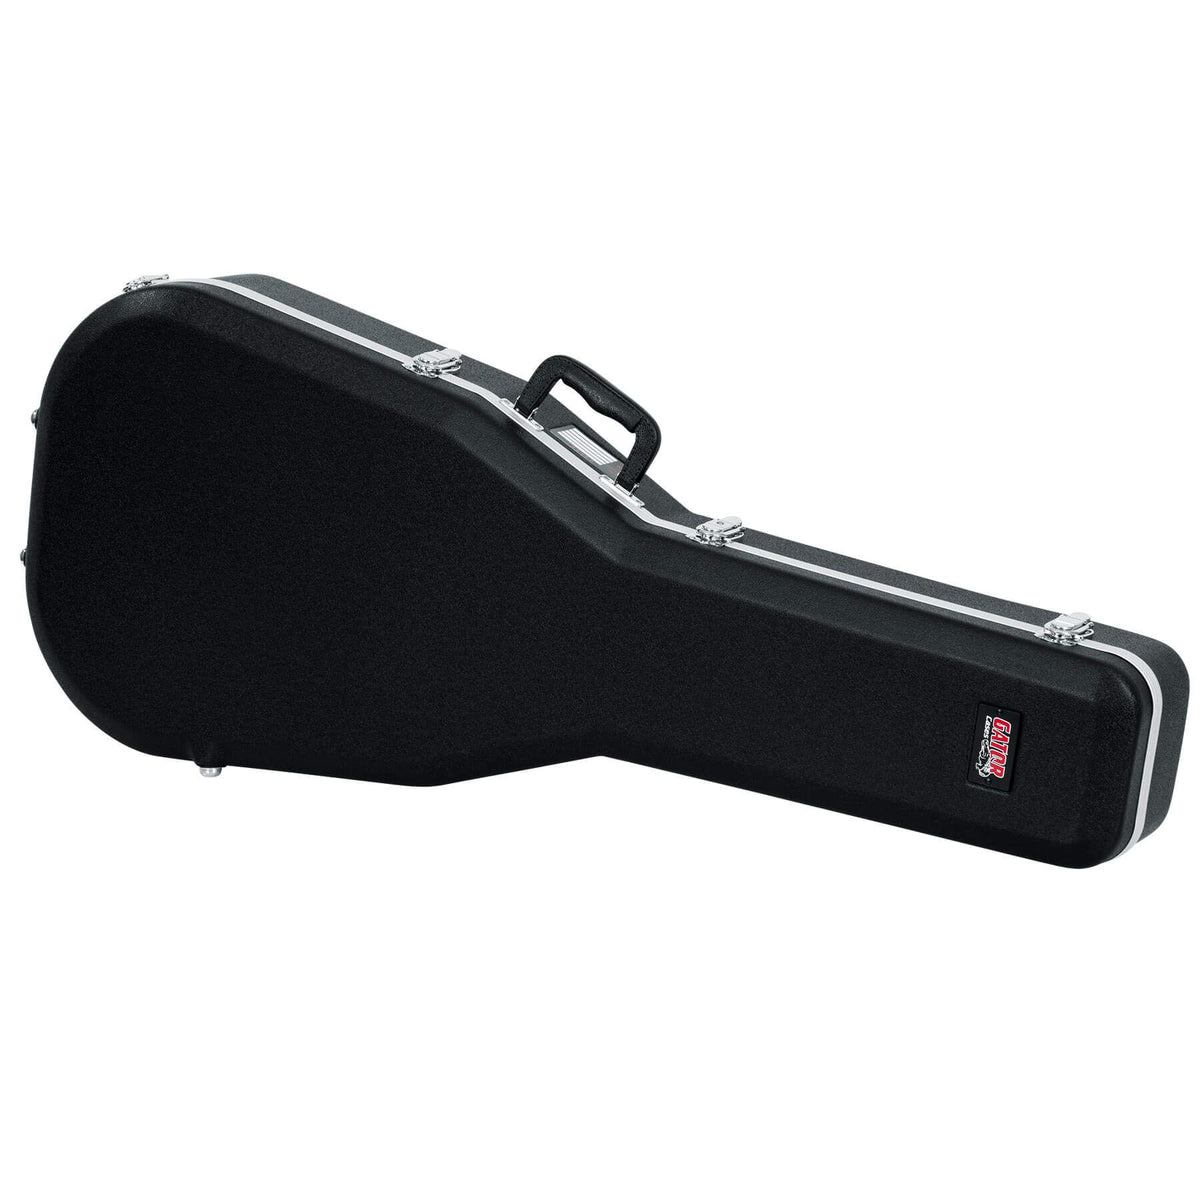 Gator Classical Guitar Case fits Yamaha C40, CG122MS, CG142S